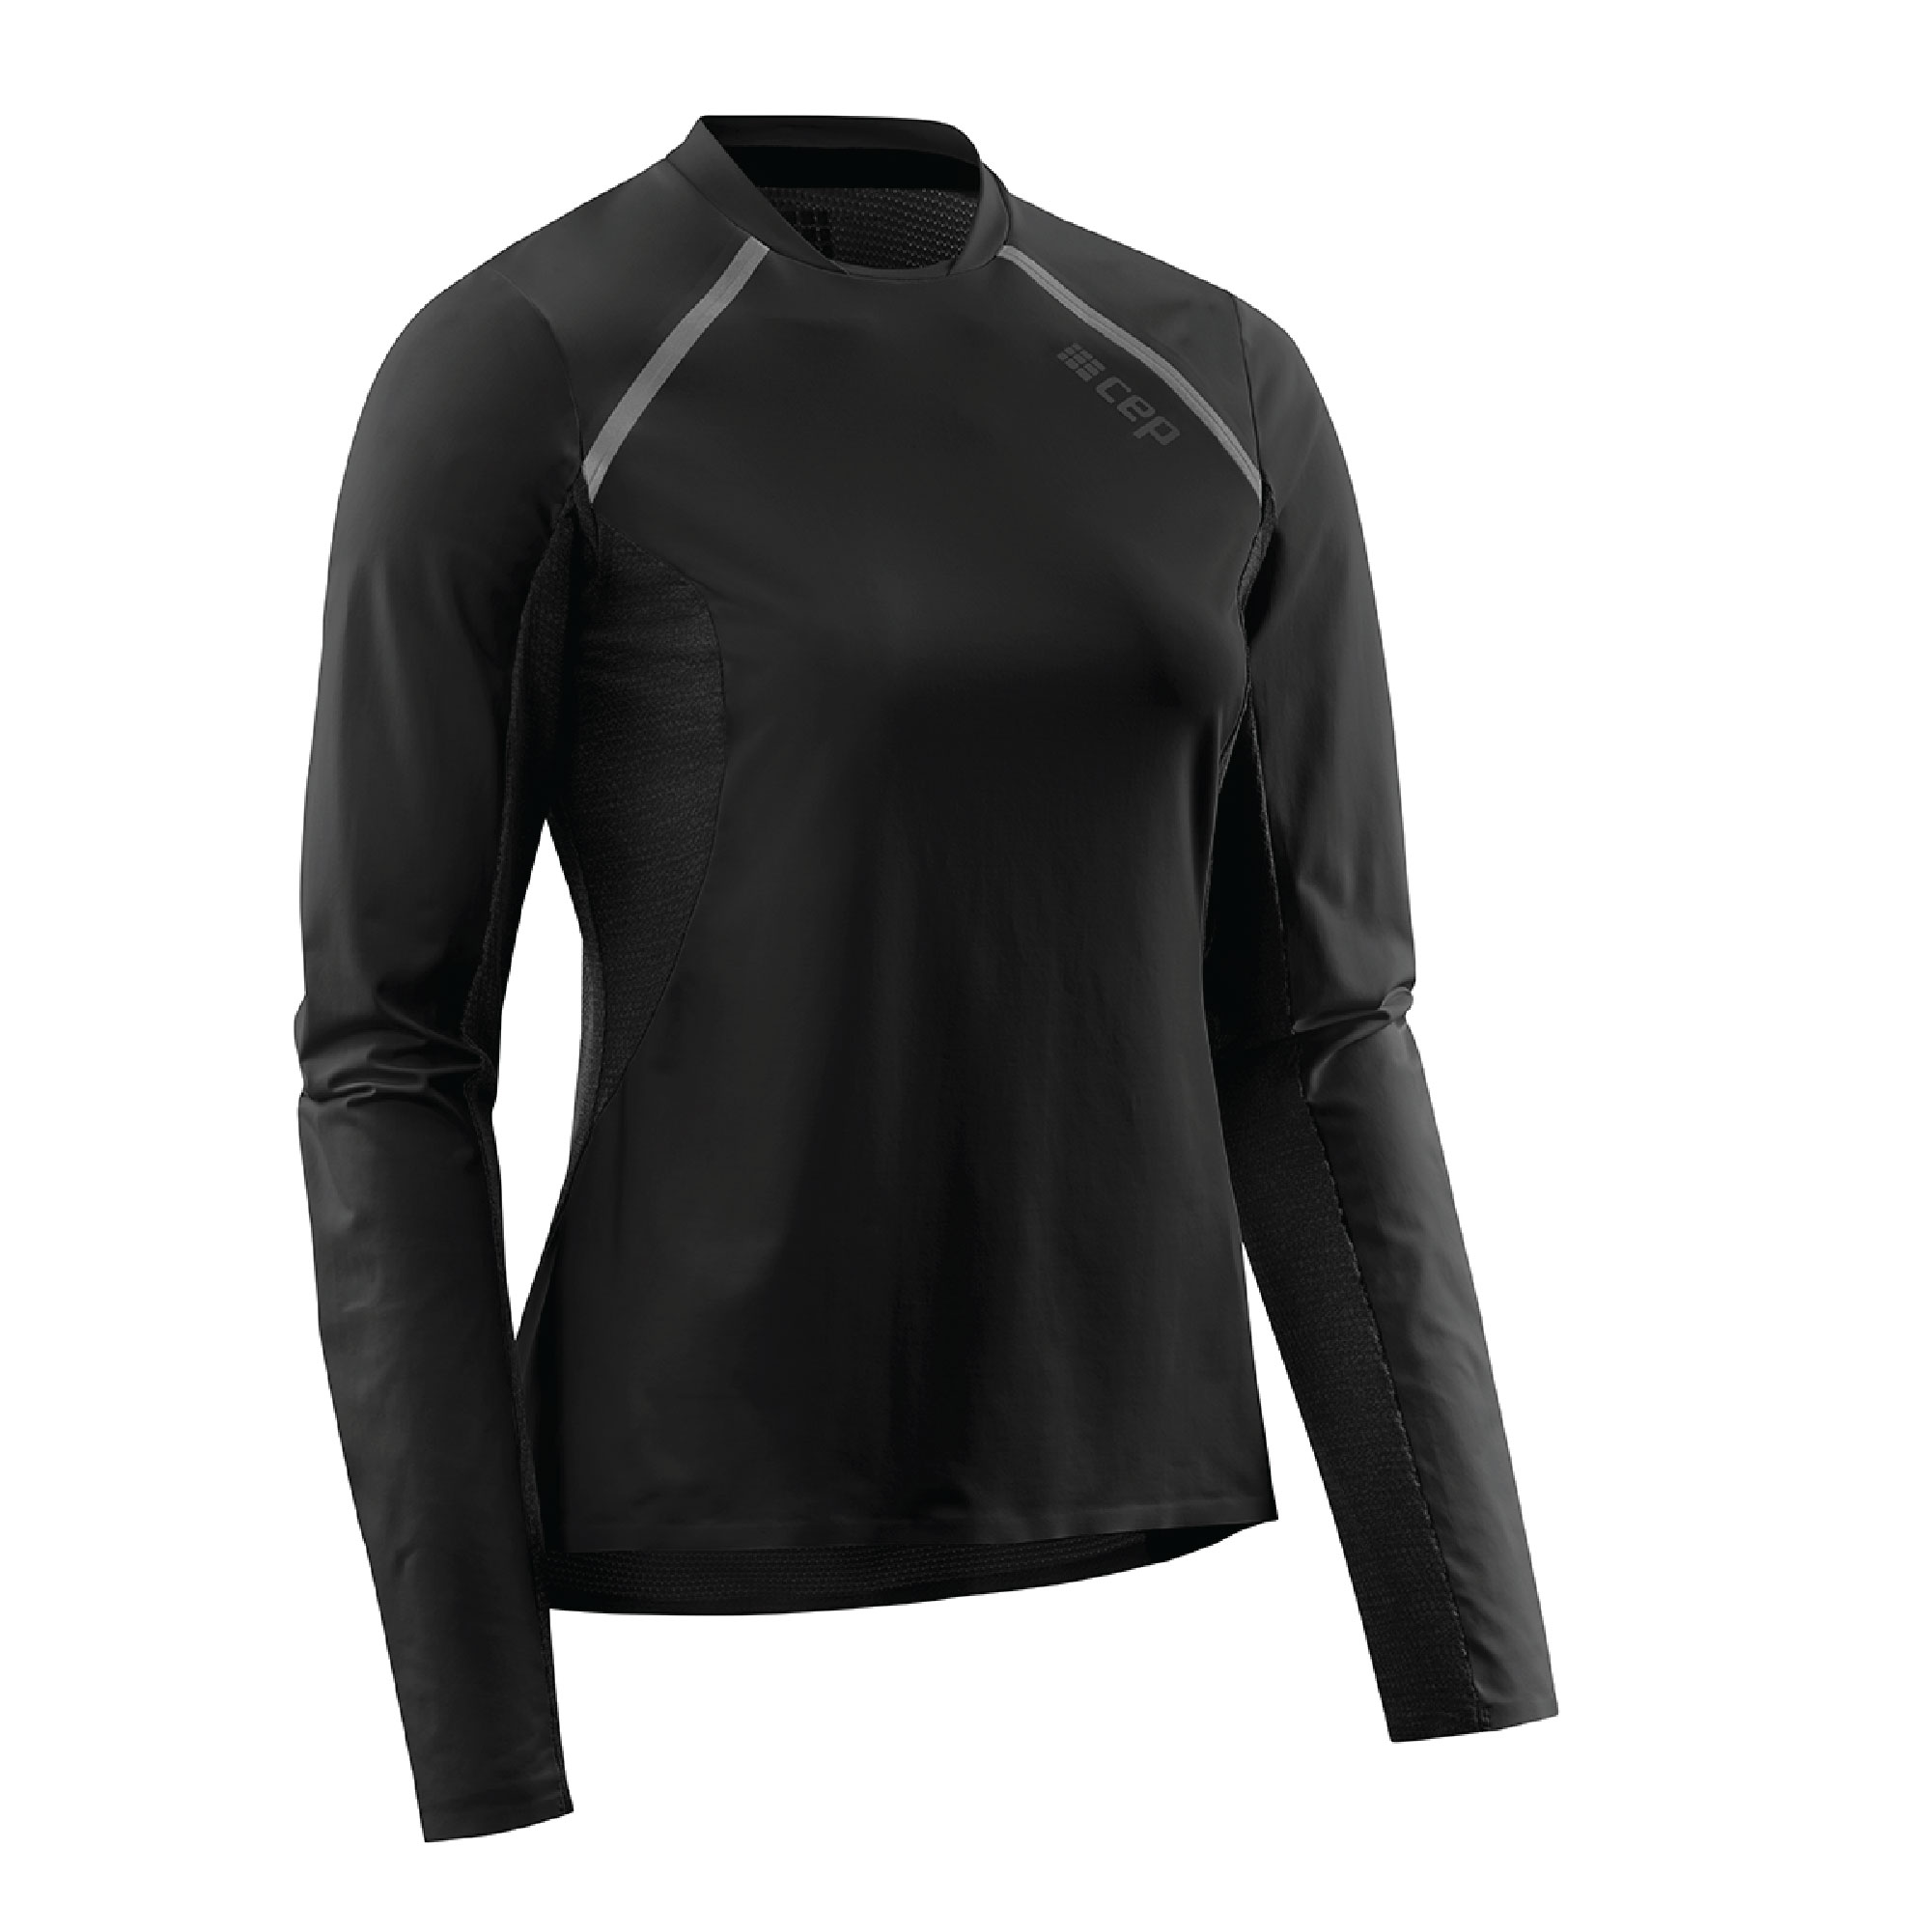 RUN SHIRT | LONG SLEEVE | WOMEN